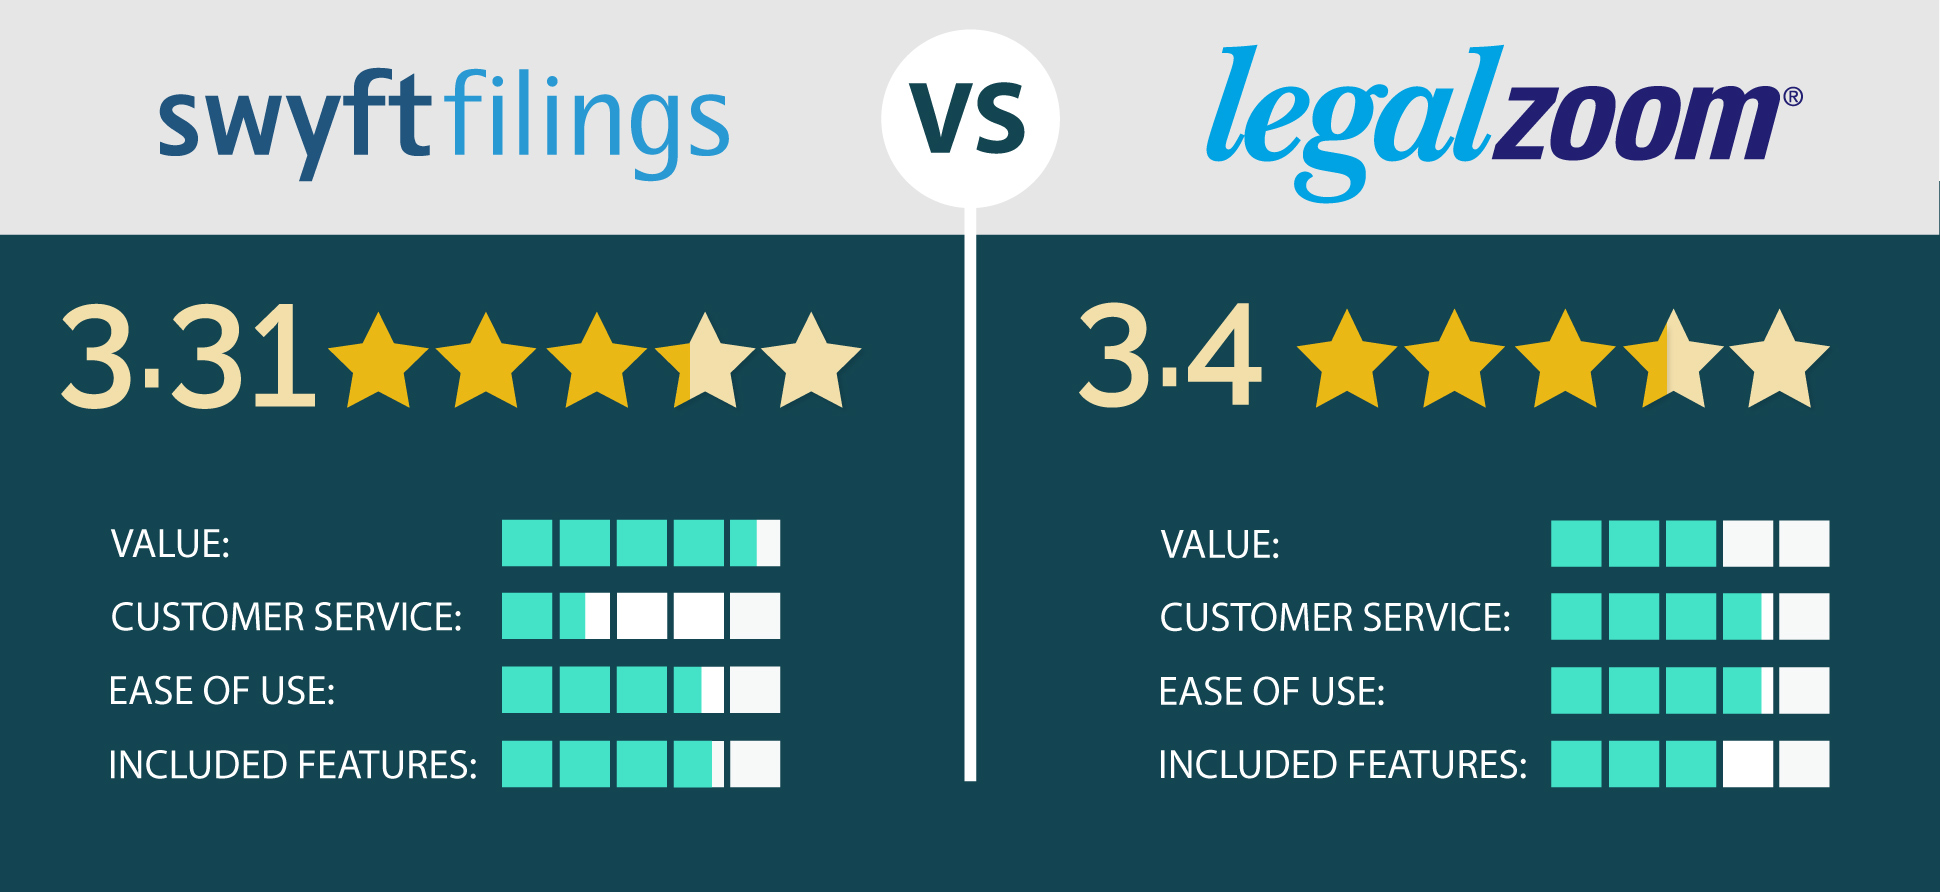 Swyft Filings is rated 3.31 out of 5 overall vs LegalZoom at 3.4 out of 5 overall, see Ratings Highlights for a breakdown